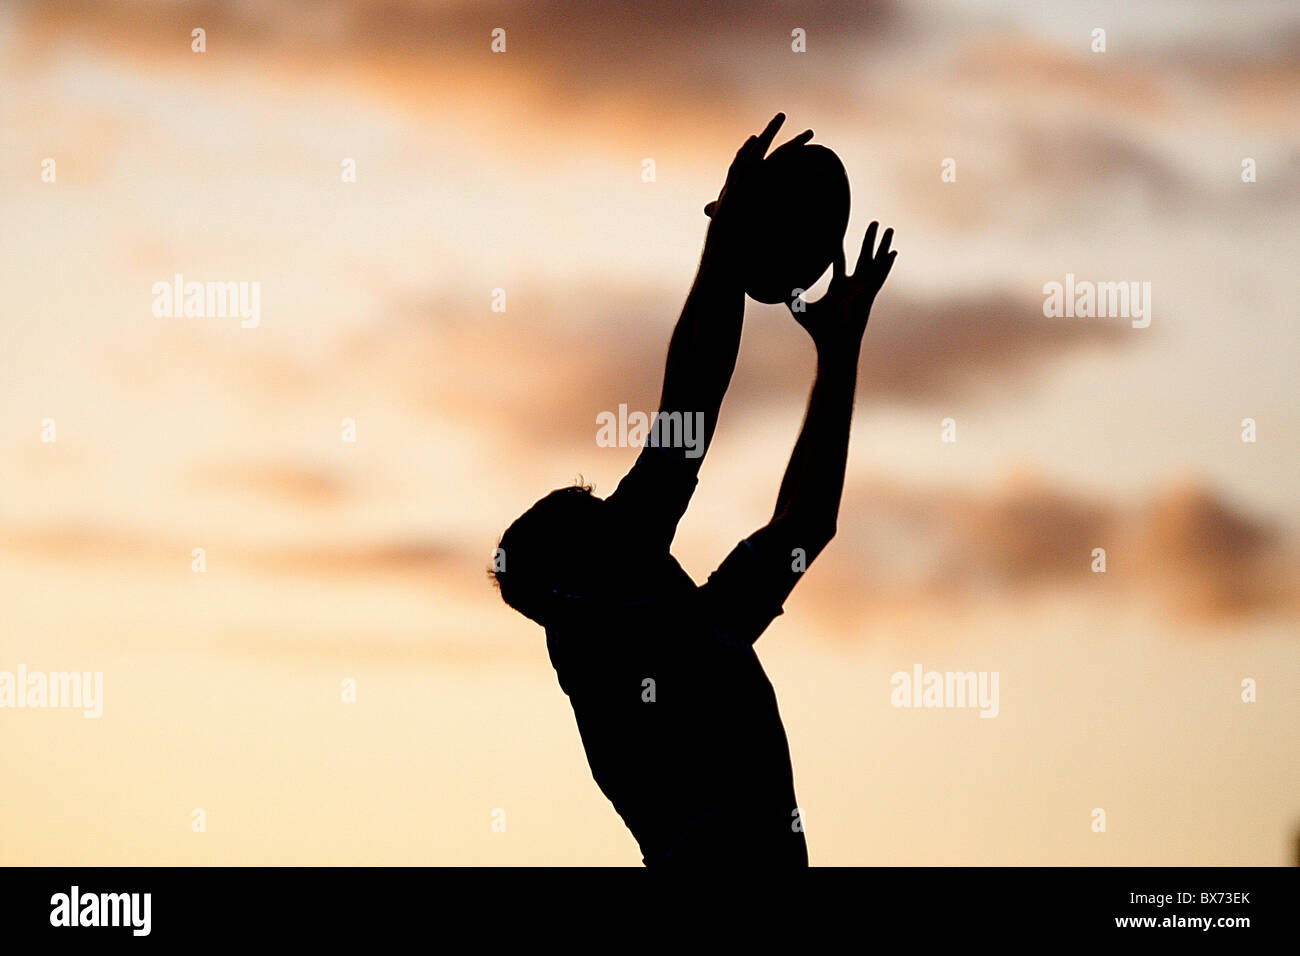 Silhouette Rugby player with ball avec coucher de soleil Photo Stock